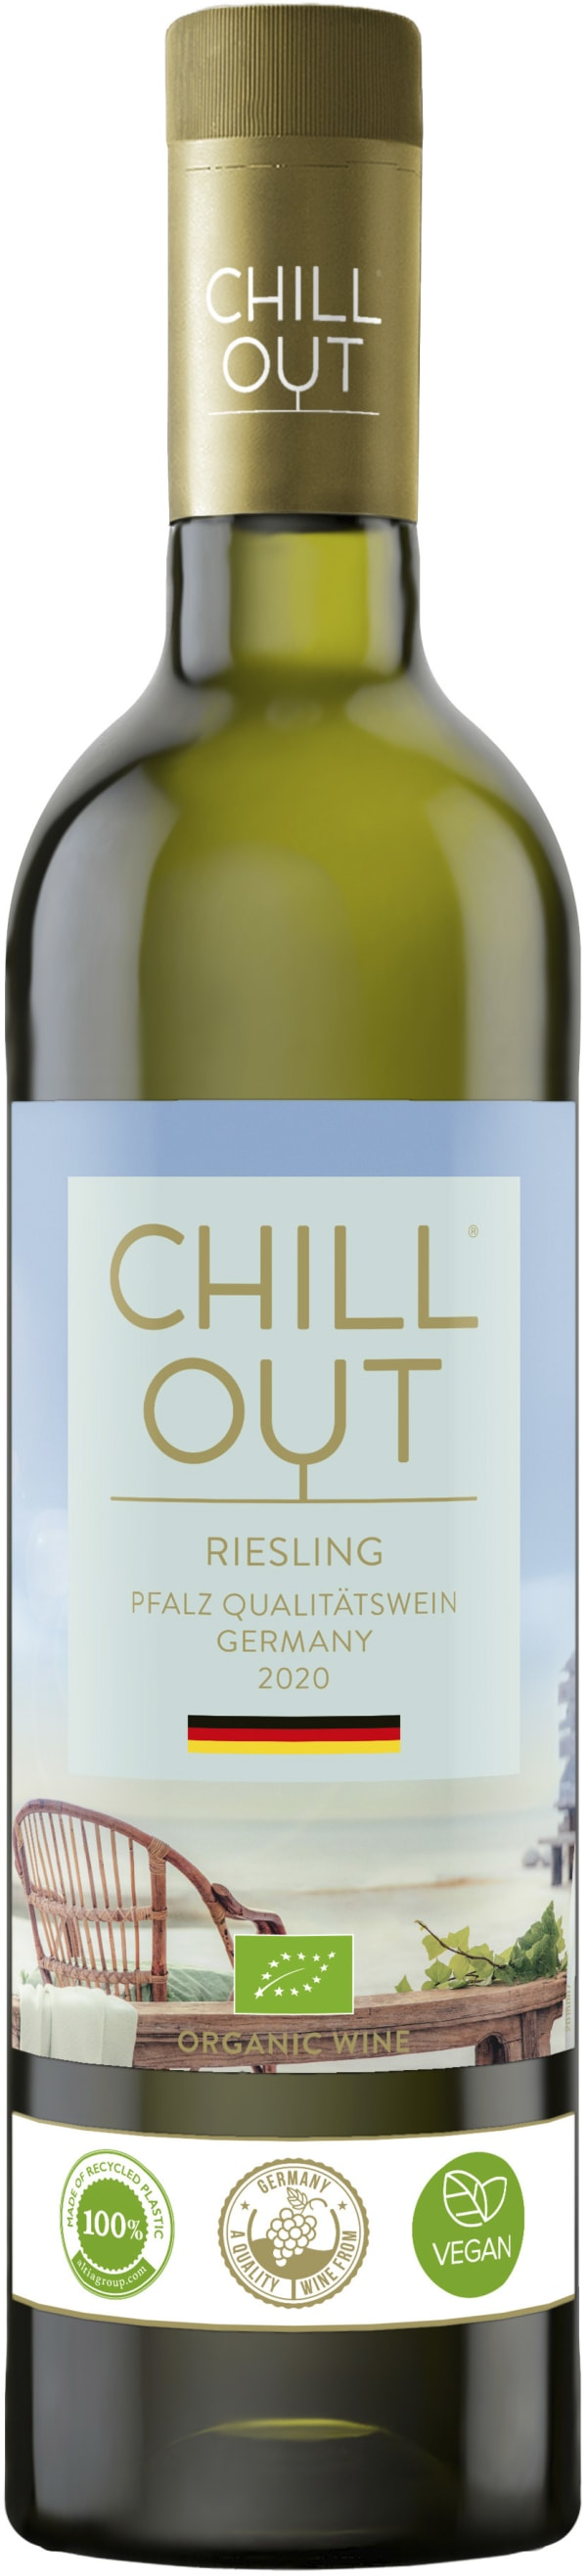 Chill Out Crisp & Fruity Riesling Organic 2015 muovipullo